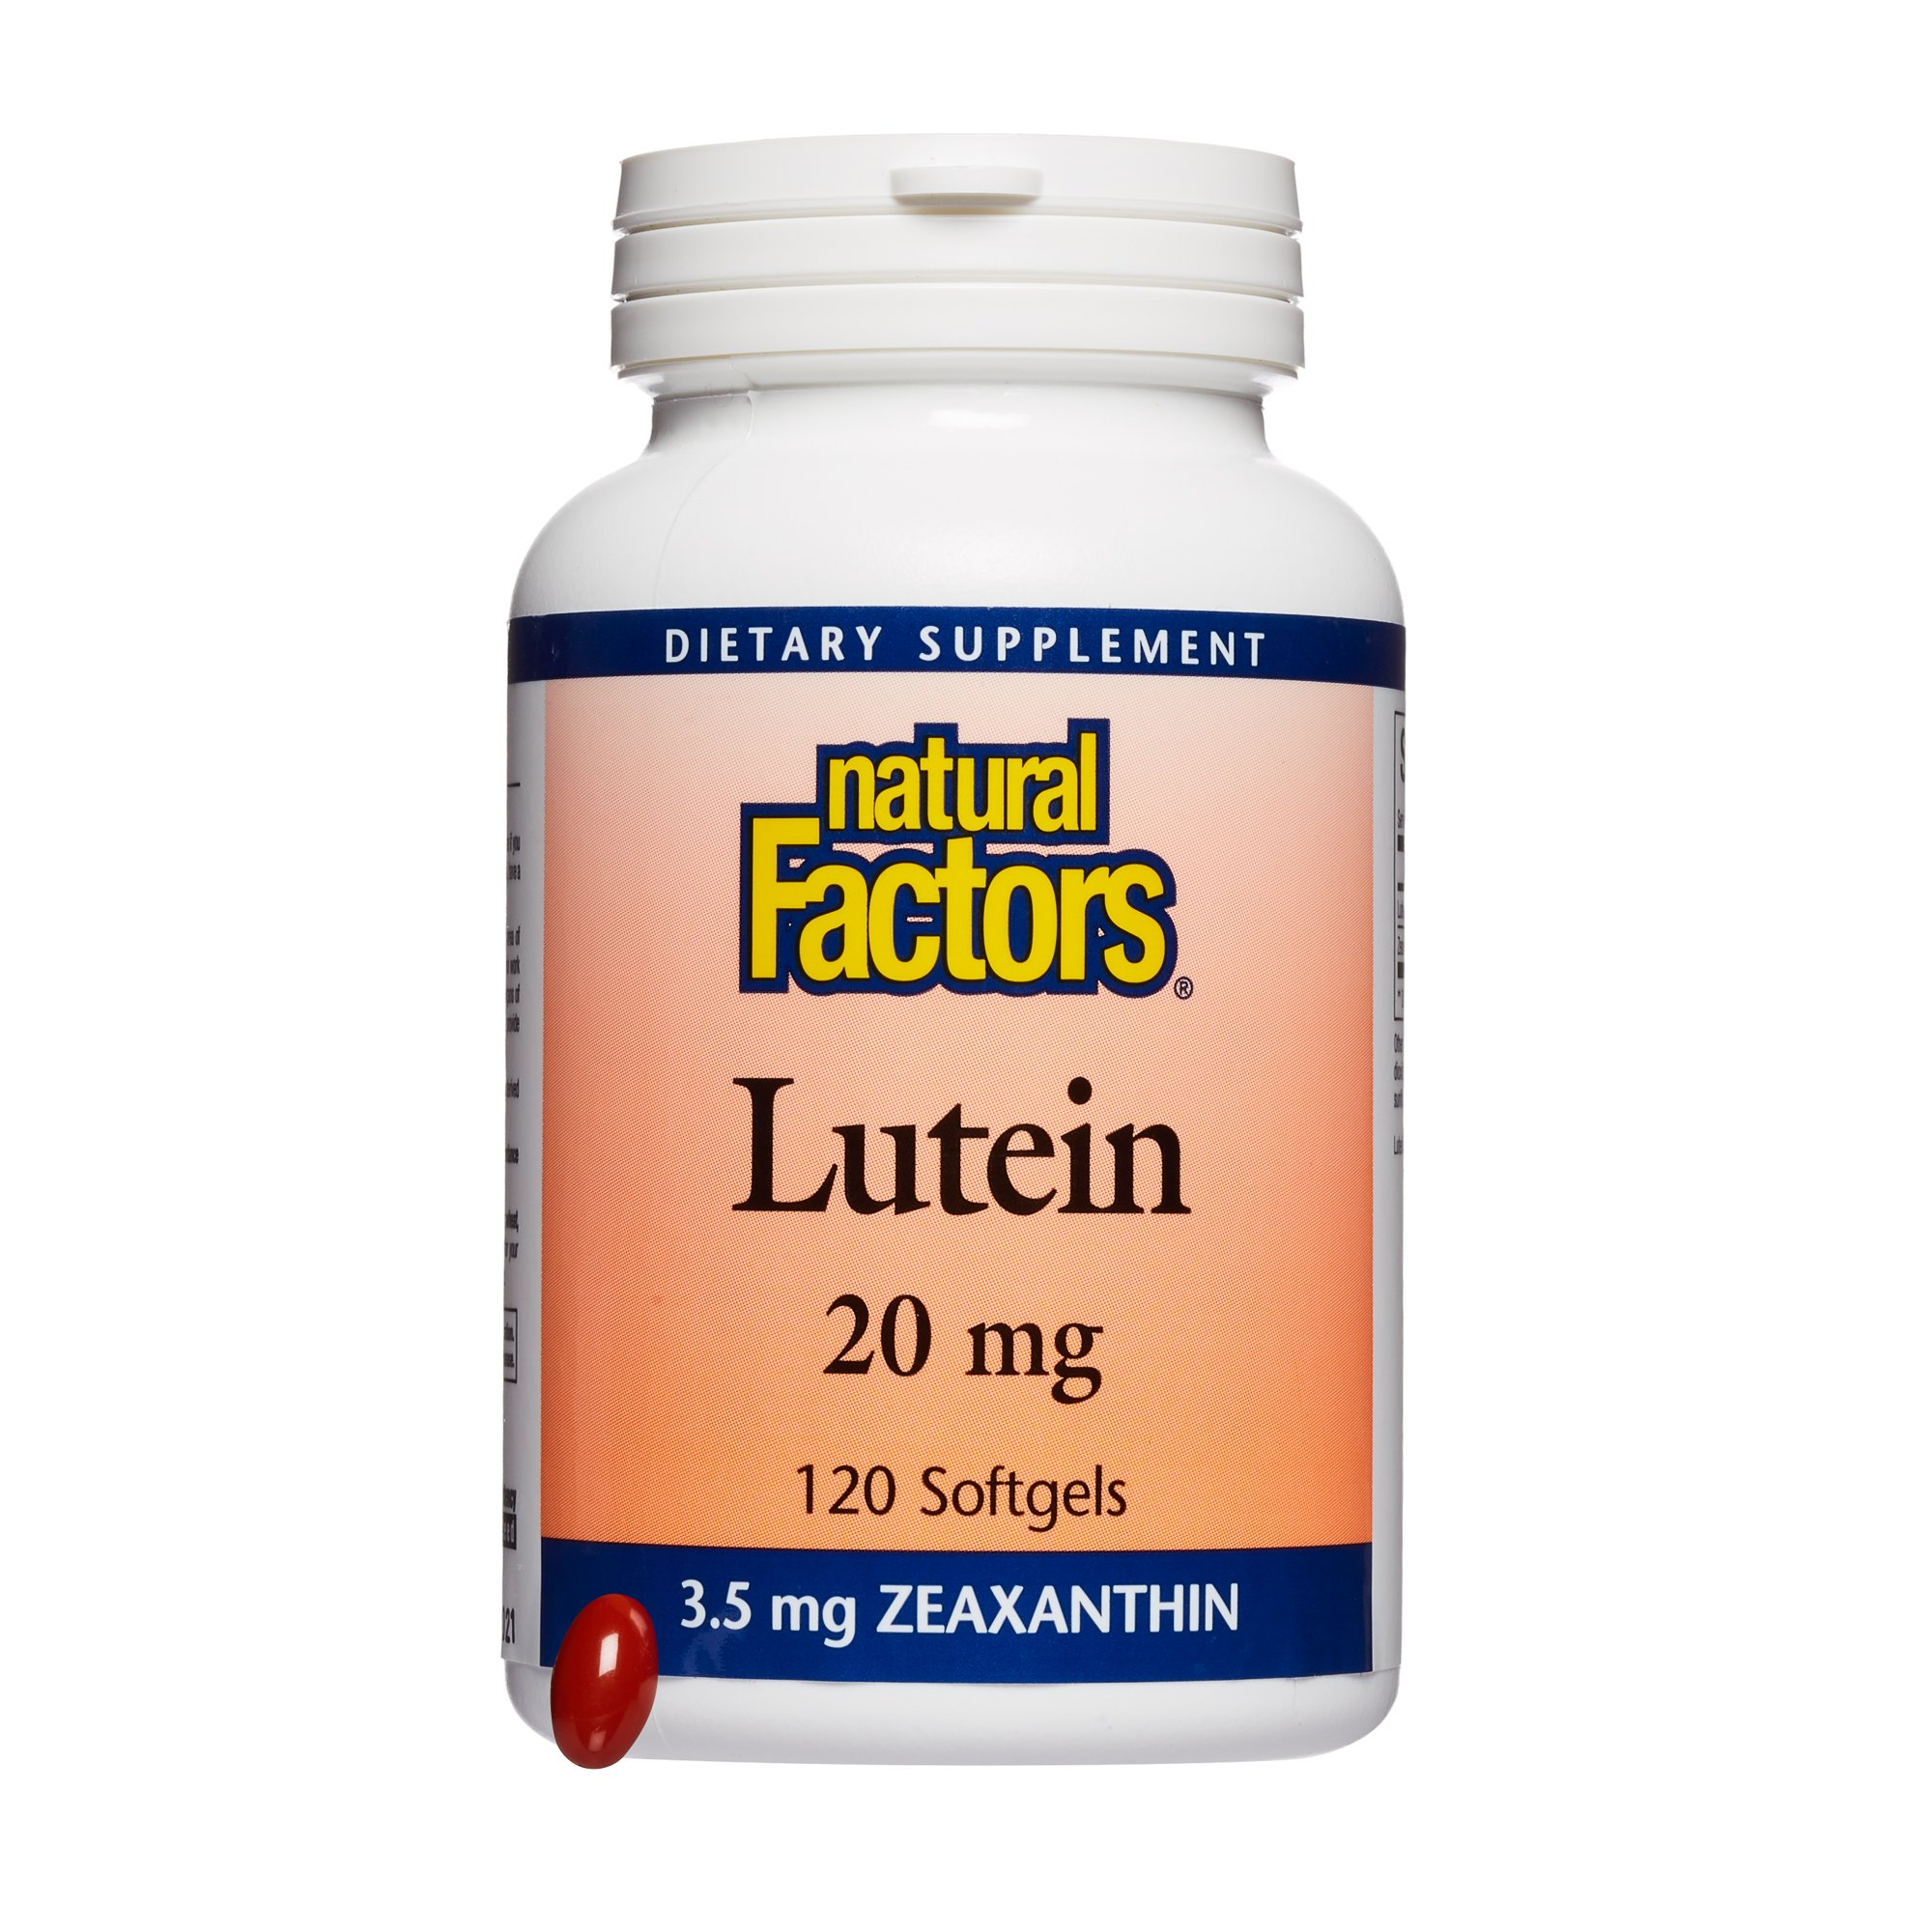 Natural Factors, Lutein 20 mg, Antioxidant Support for Healthy Eyes and Skin with Zeaxanthin, 120 softgels (120 servings) by Natural Factors